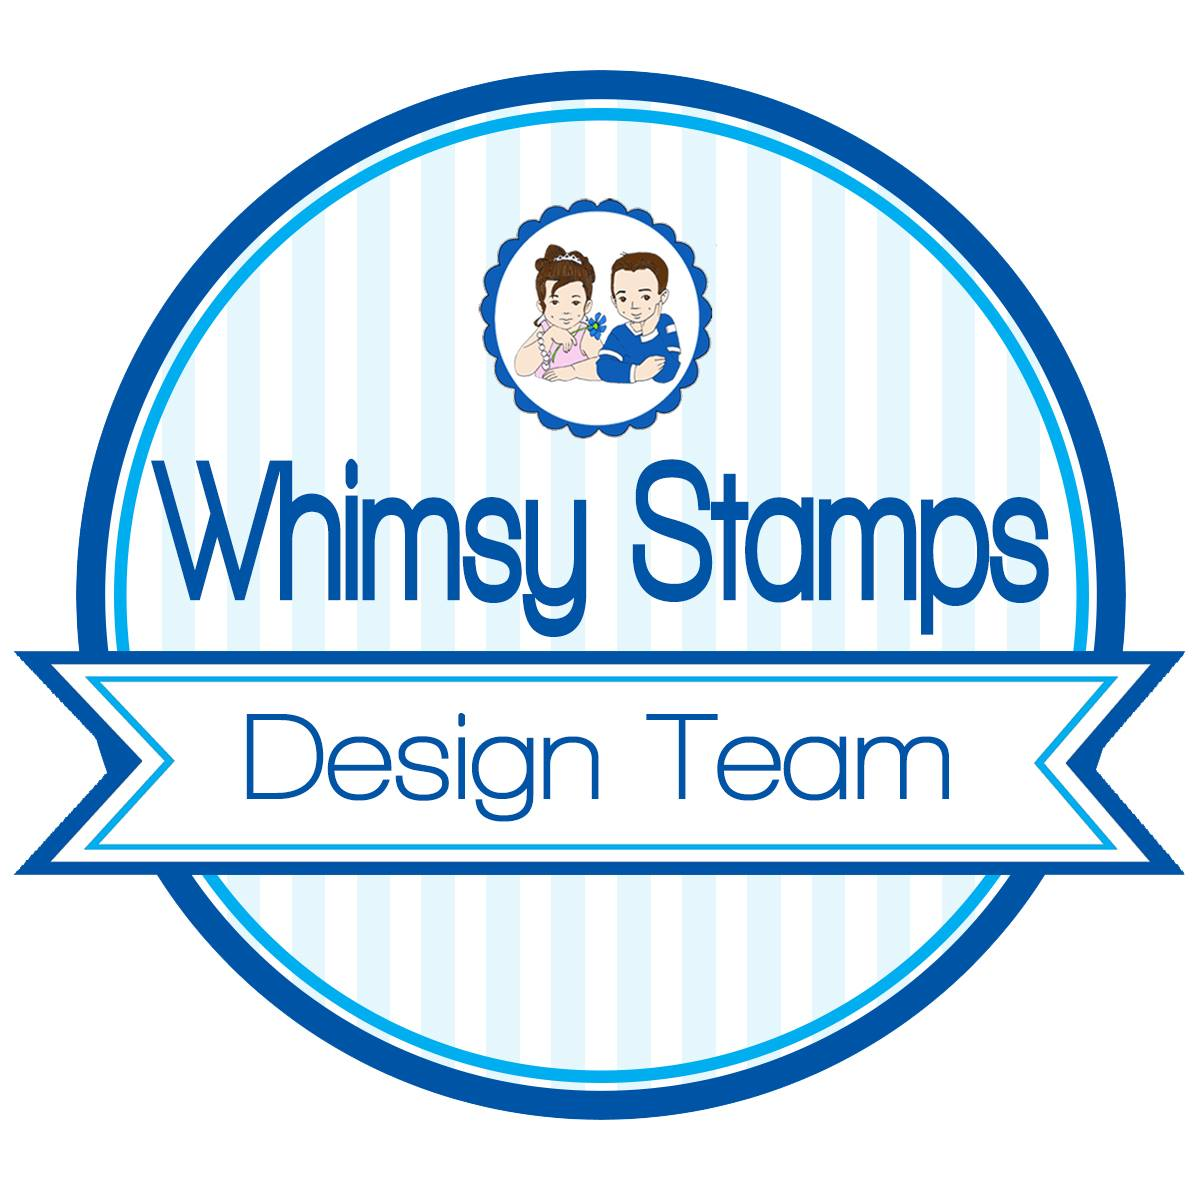 ~ Designing for Whimsy Stamps ~